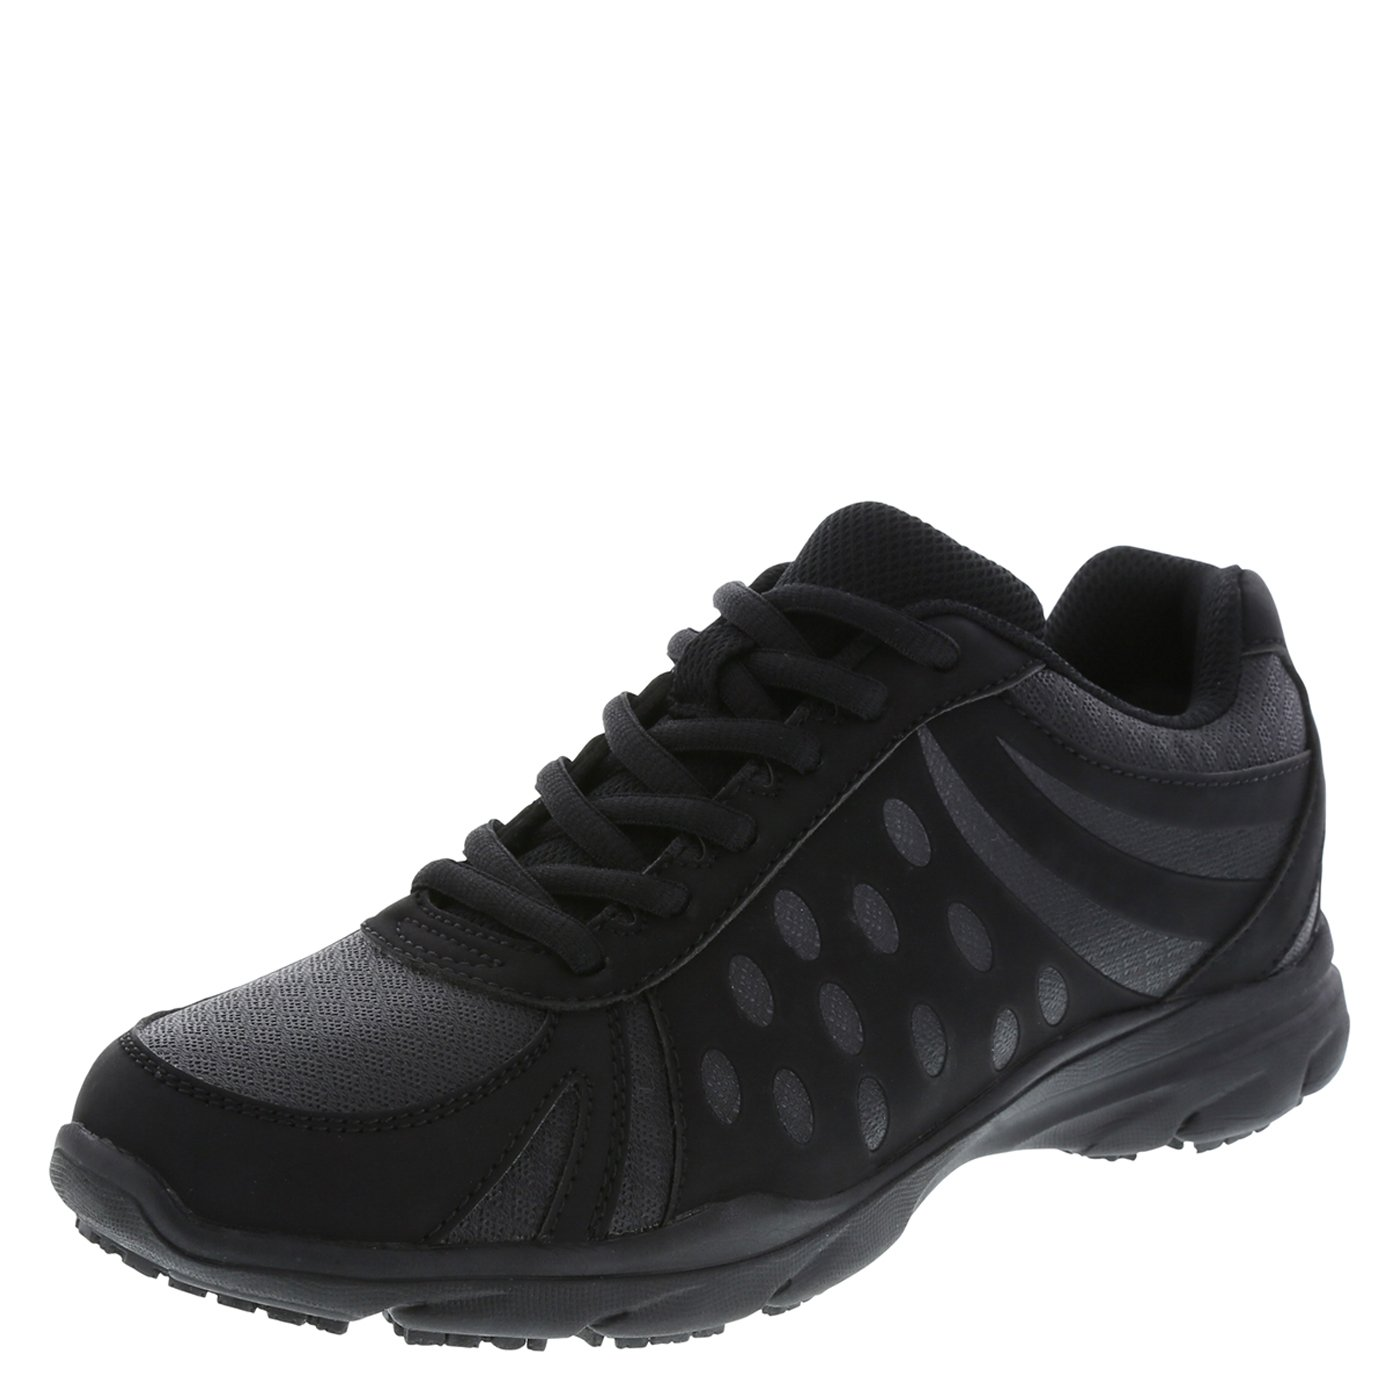 safeTstep Slip Resistant Women's Black Women's Camina Runner 8 Regular